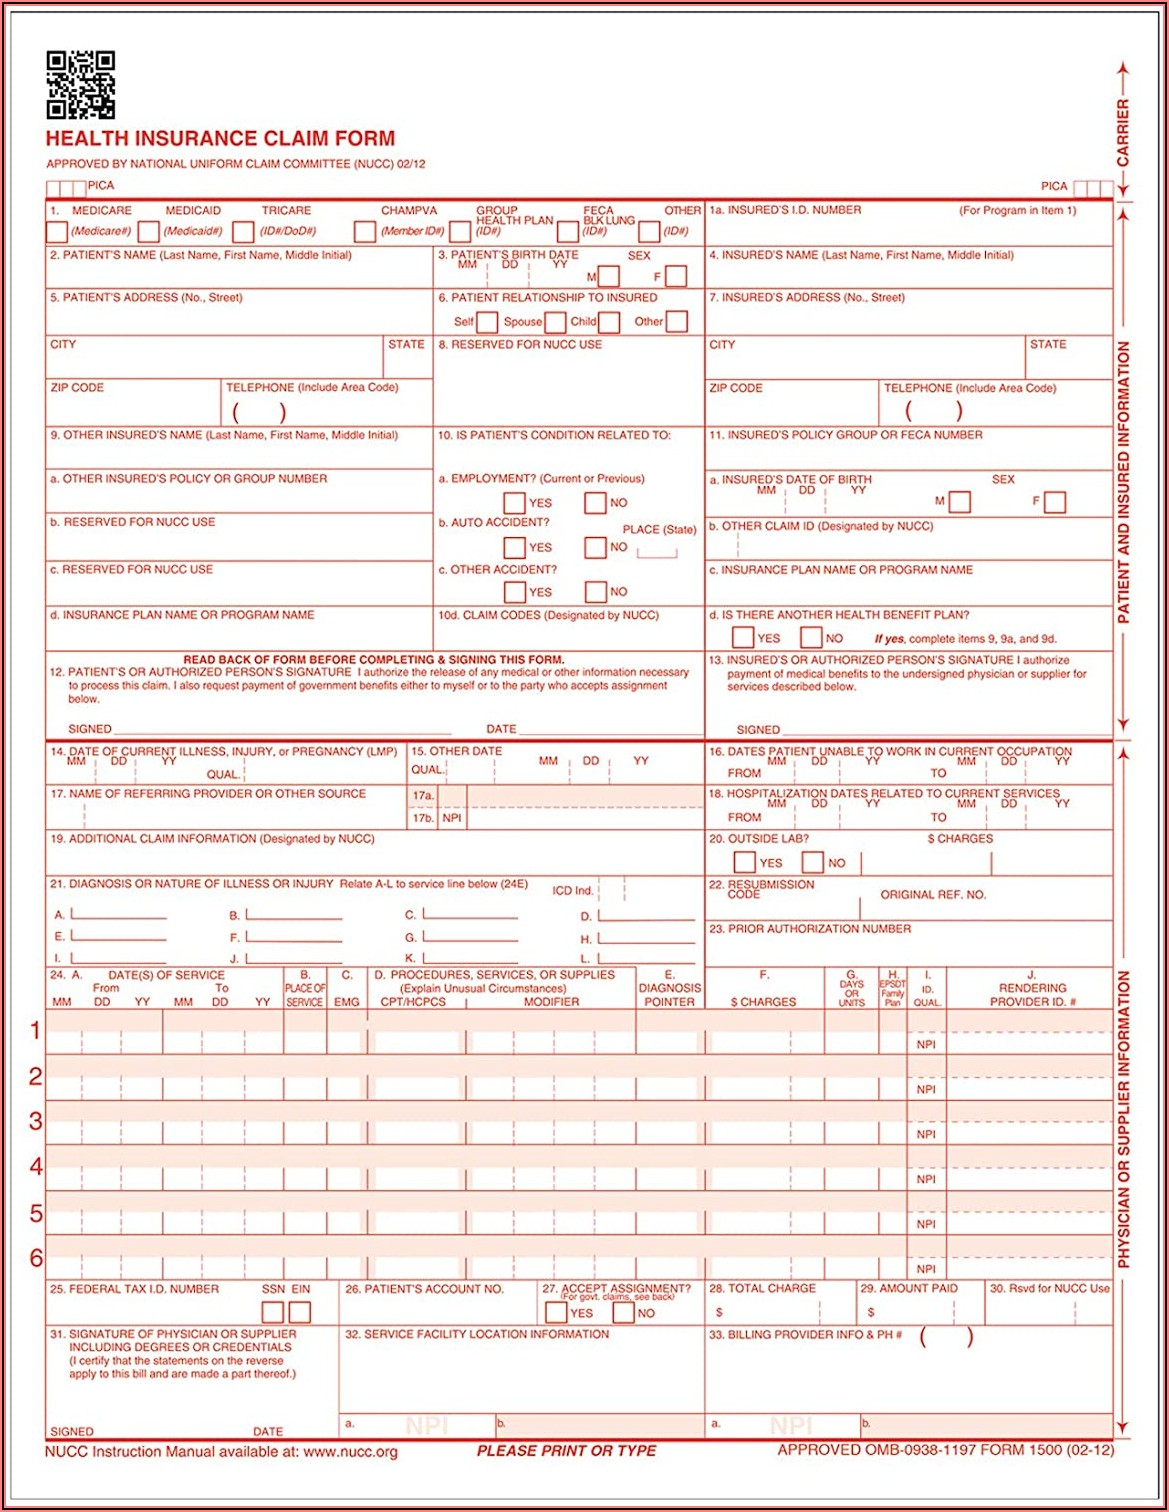 Where To Order Hcfa 1500 Forms